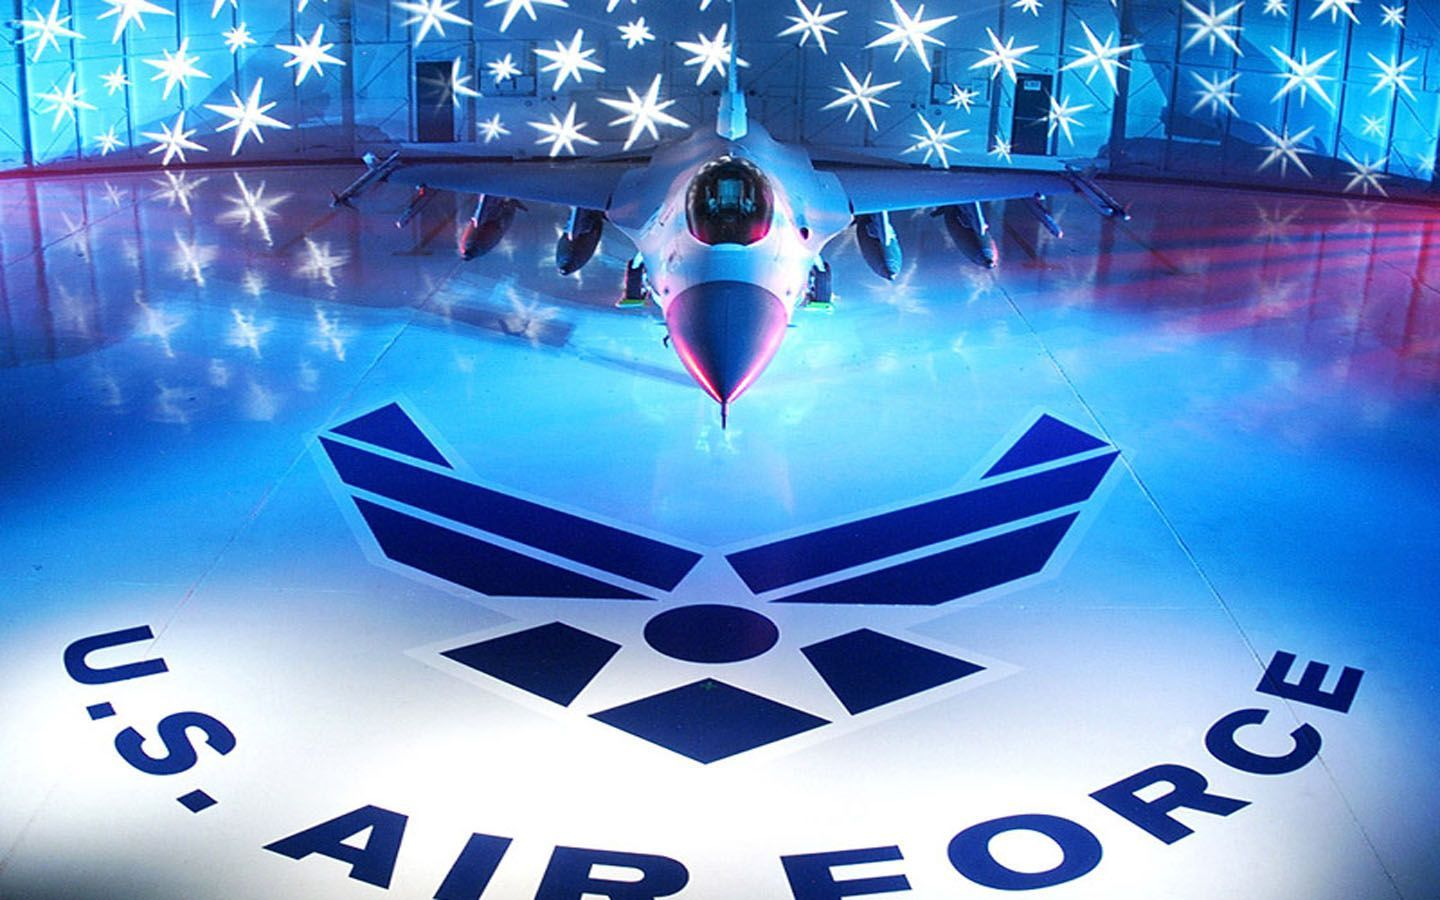 United States Air Force Wallpapers - Wallpaper Cave